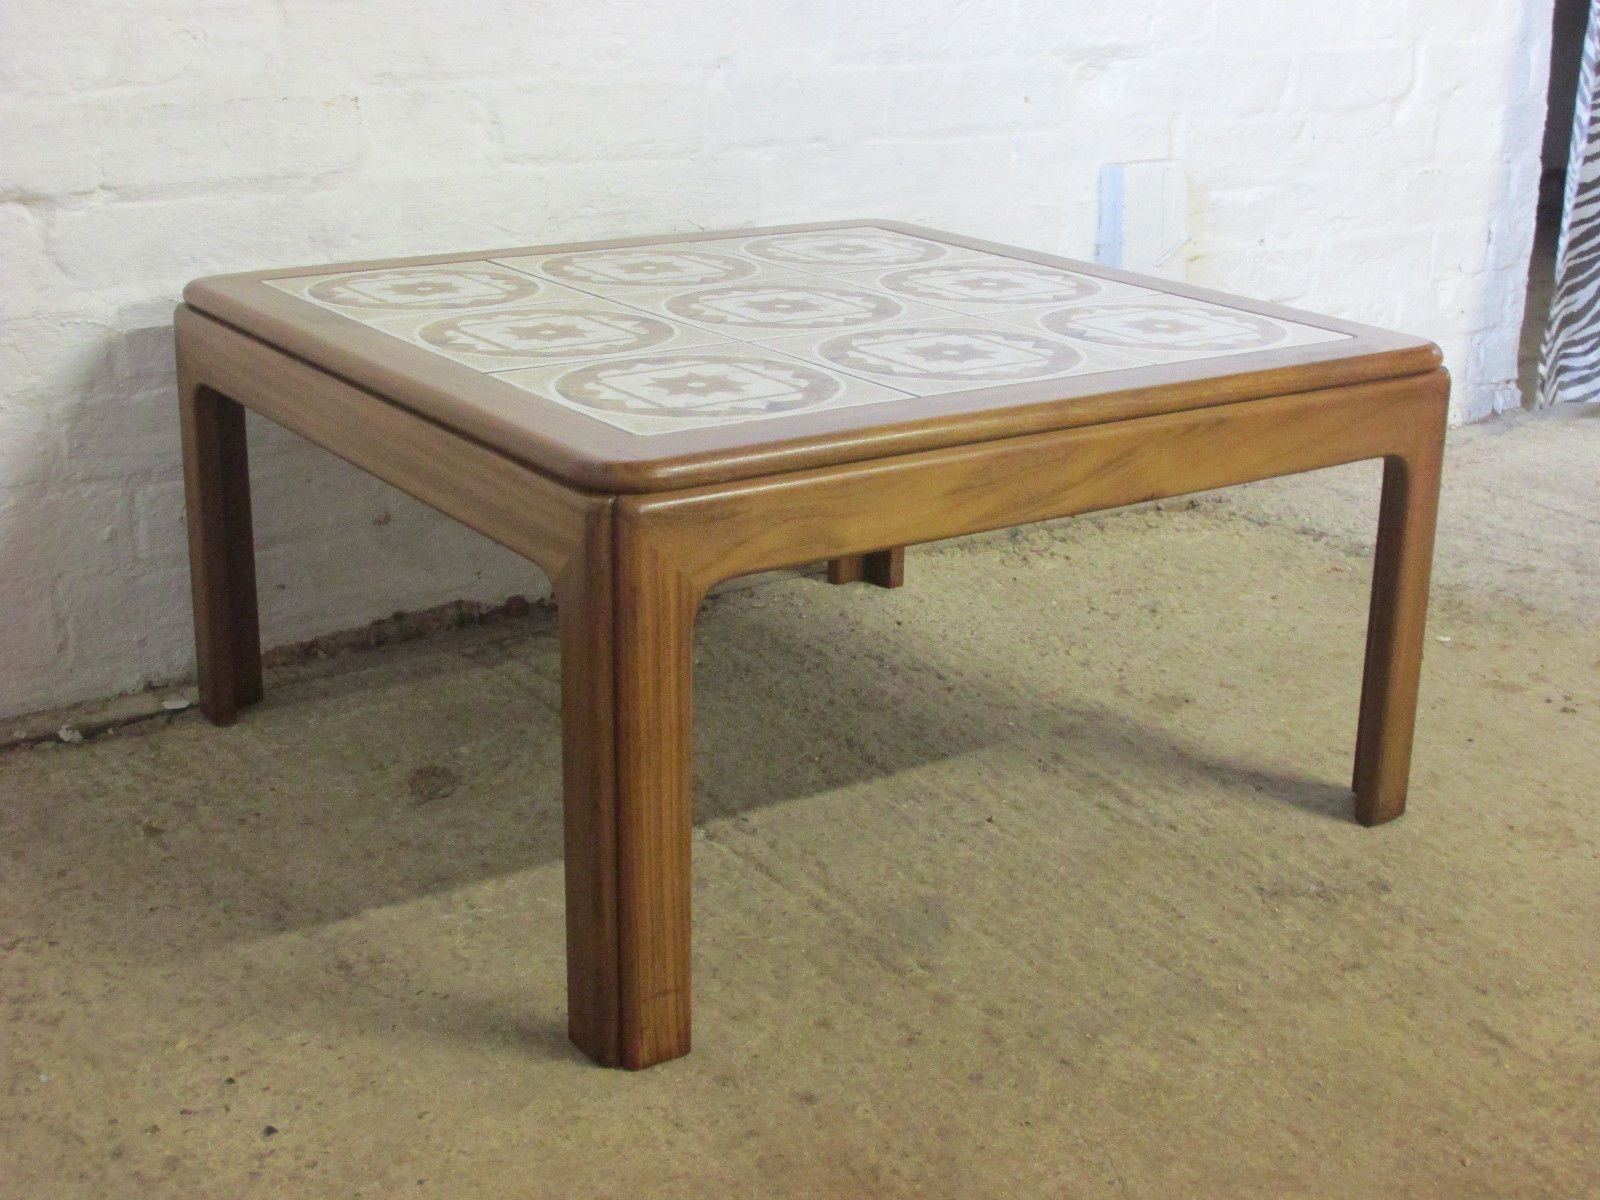 Retro 1960s 1970s G Plan Teak And Tile Top Small Square Coffee